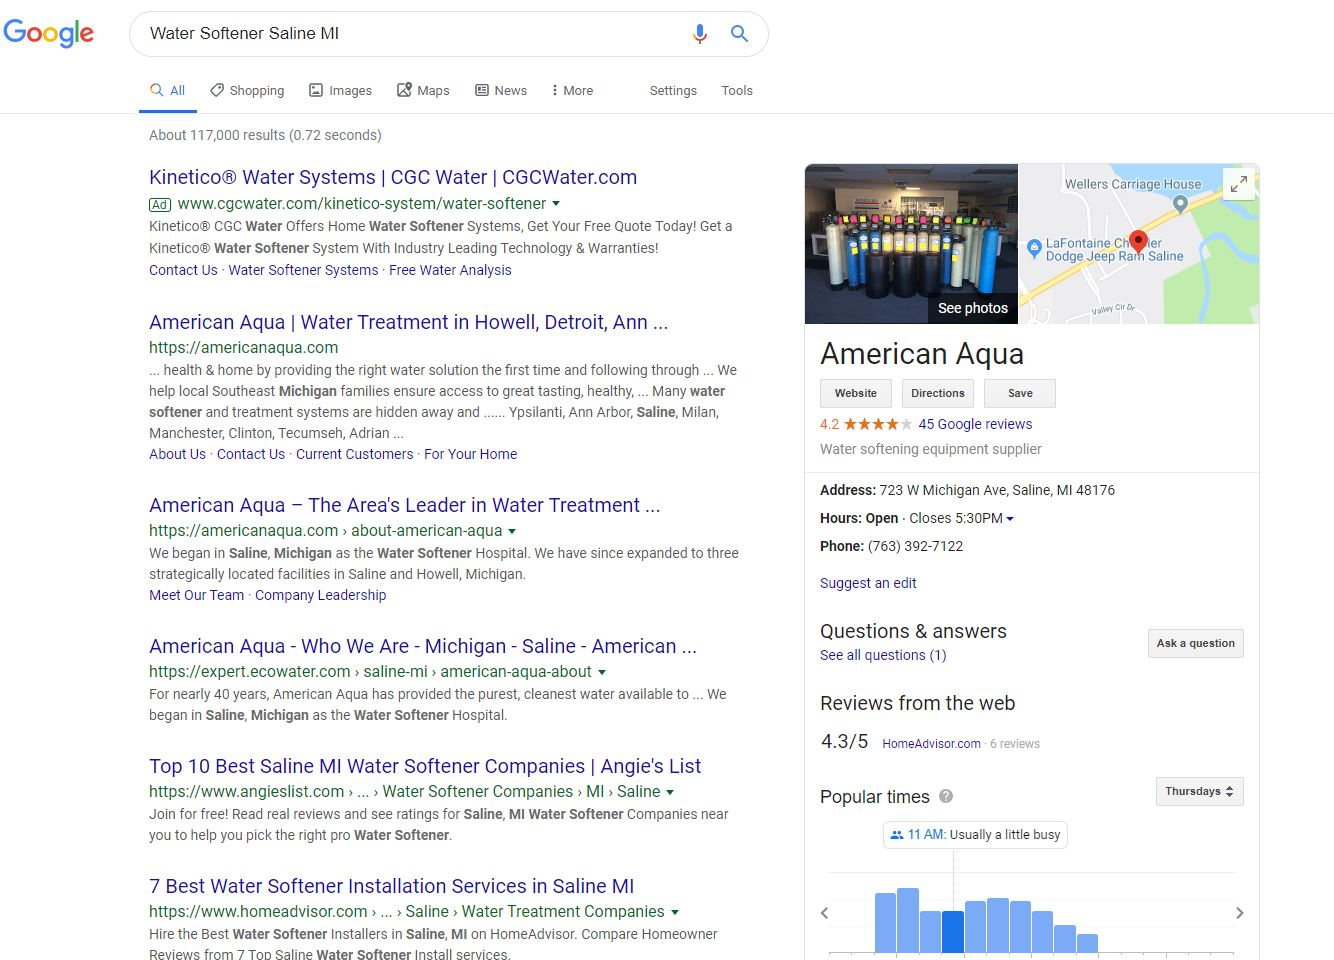 Local Water Softener Search Results